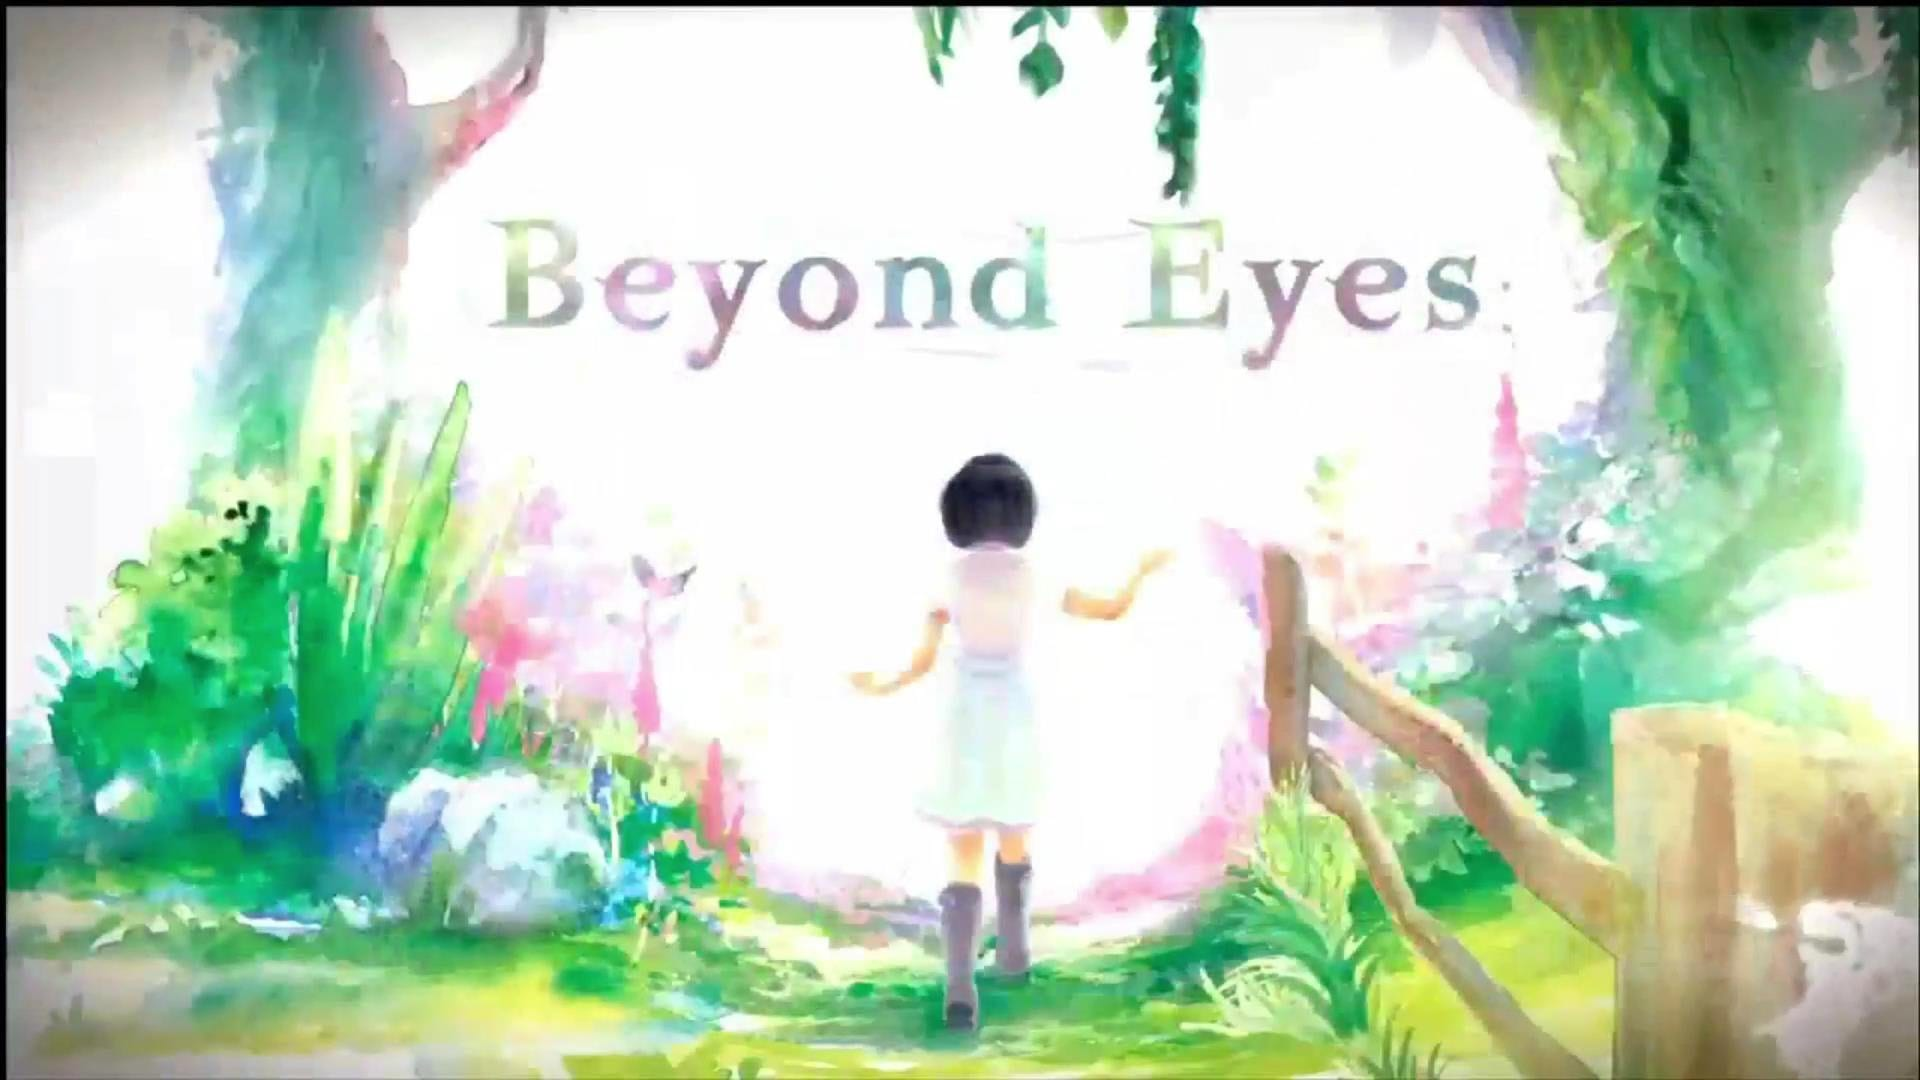 In Defense of: Beyond Eyes